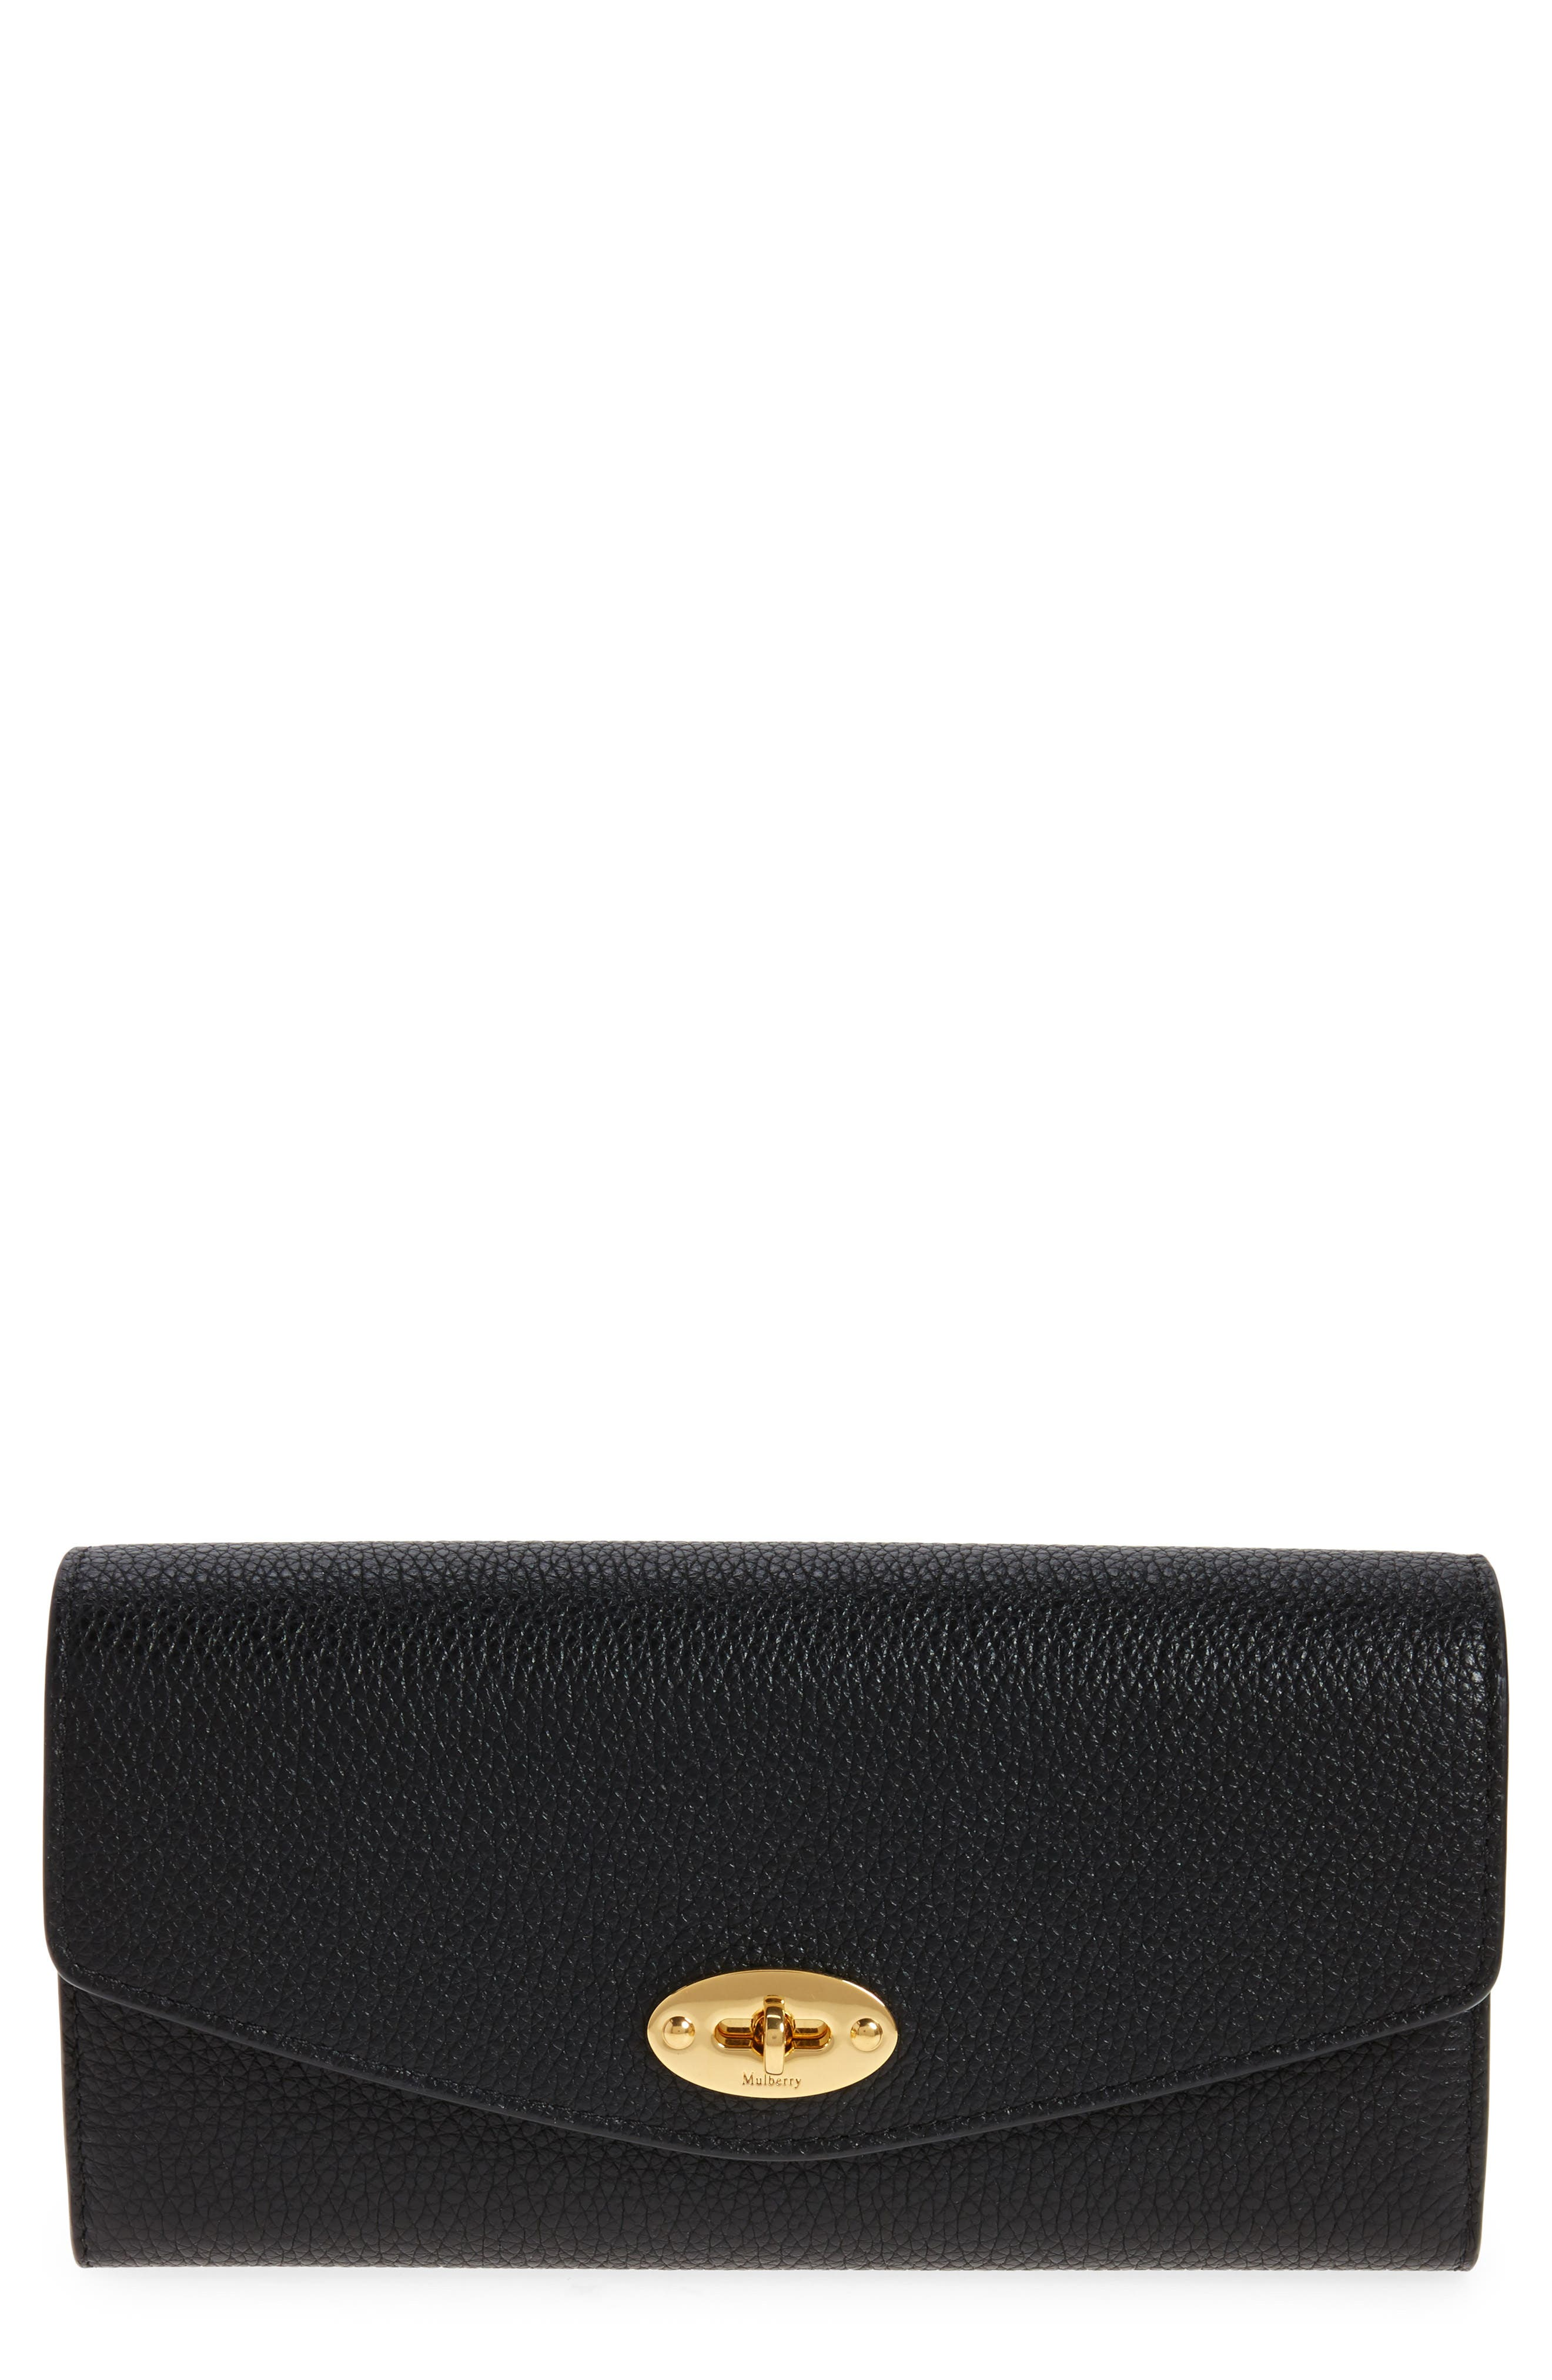 Darley Continental Leather Wallet,                         Main,                         color, Black